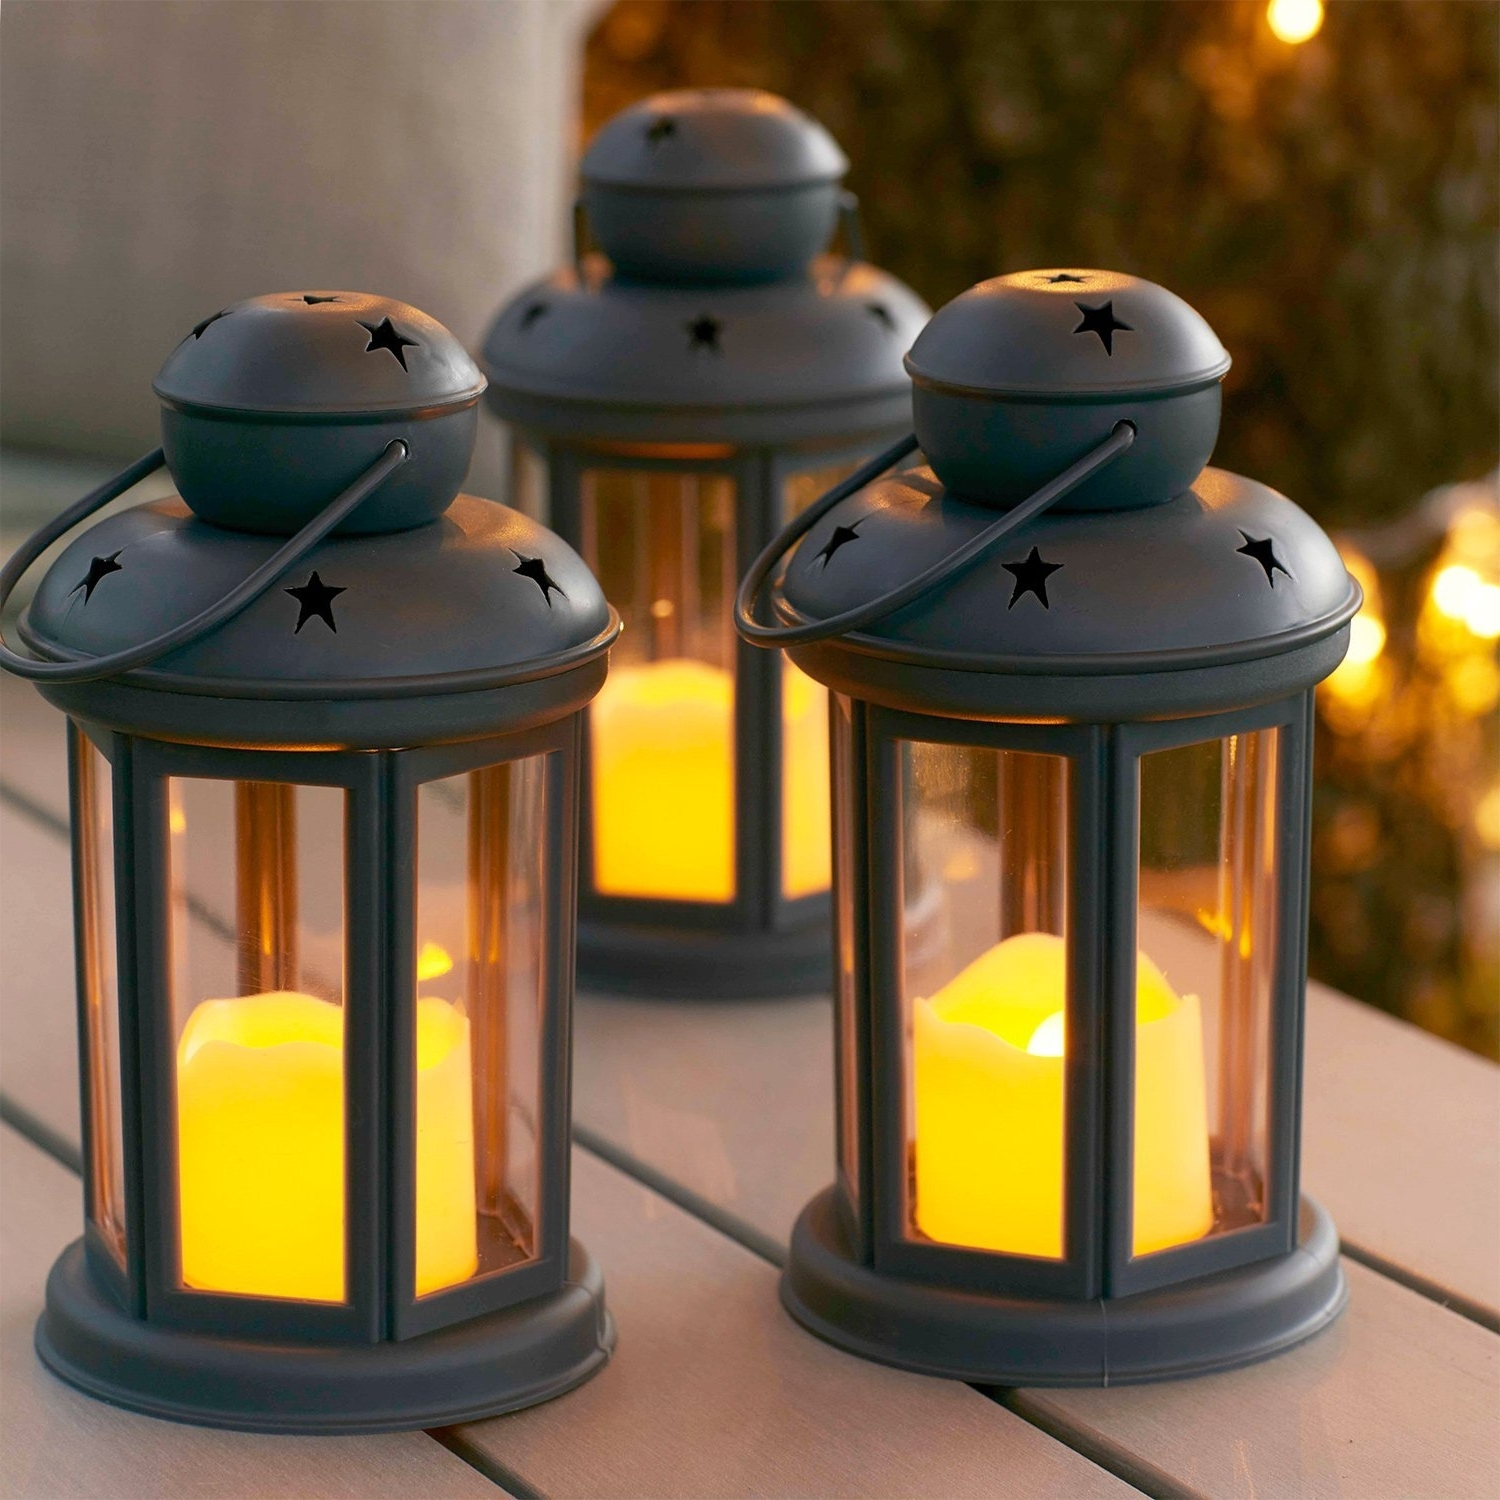 Plastic Lanterns Outdoor Lights – Awesome Home Pertaining To Most Recent Outdoor Plastic Lanterns (View 17 of 20)